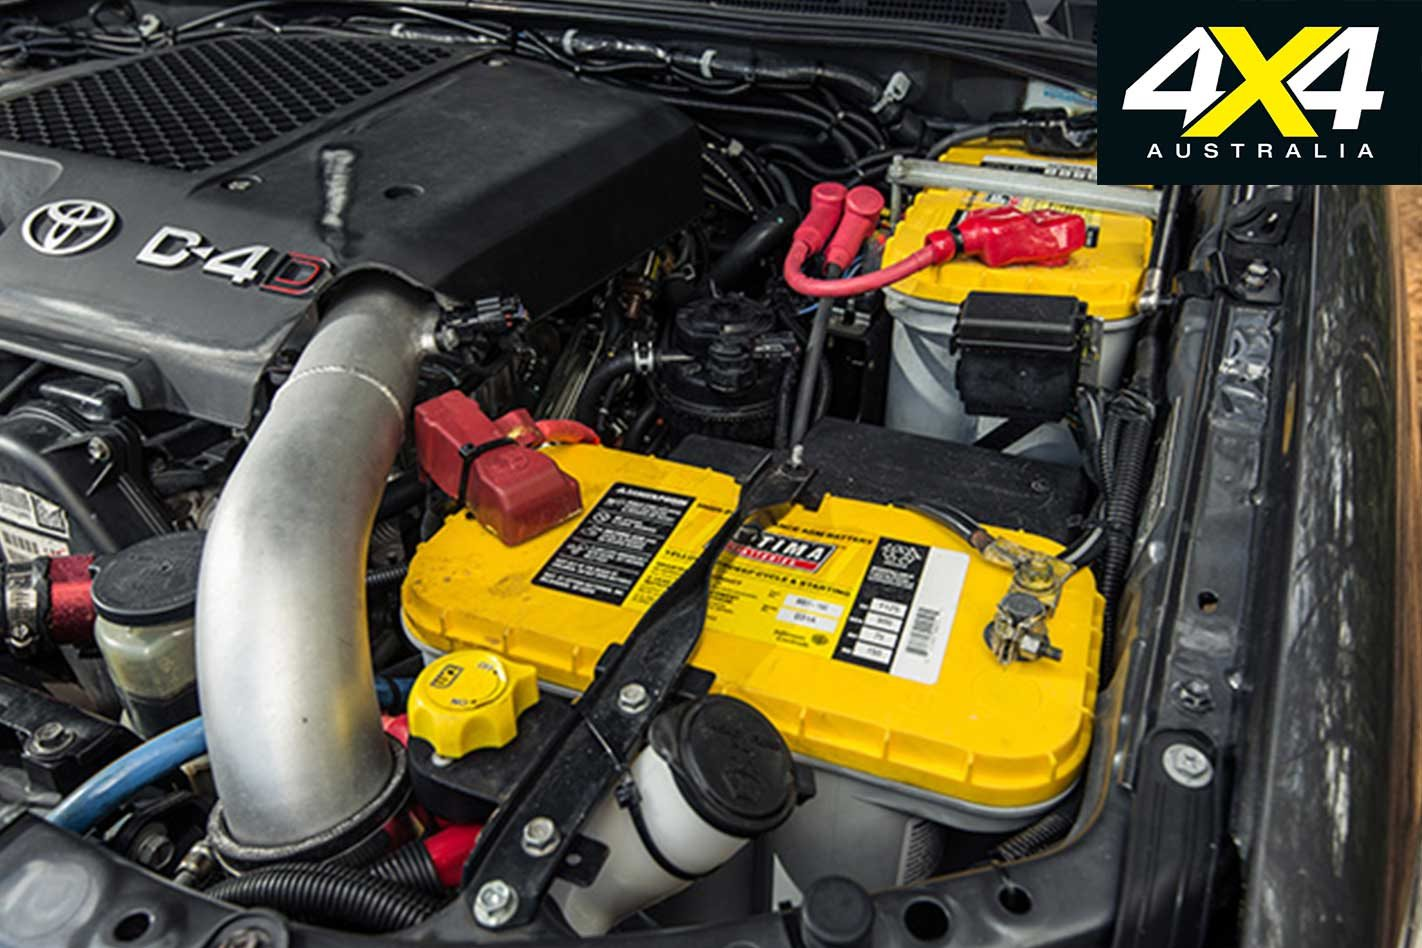 7 best car battery reviews for 2019: top picks and buying guide.